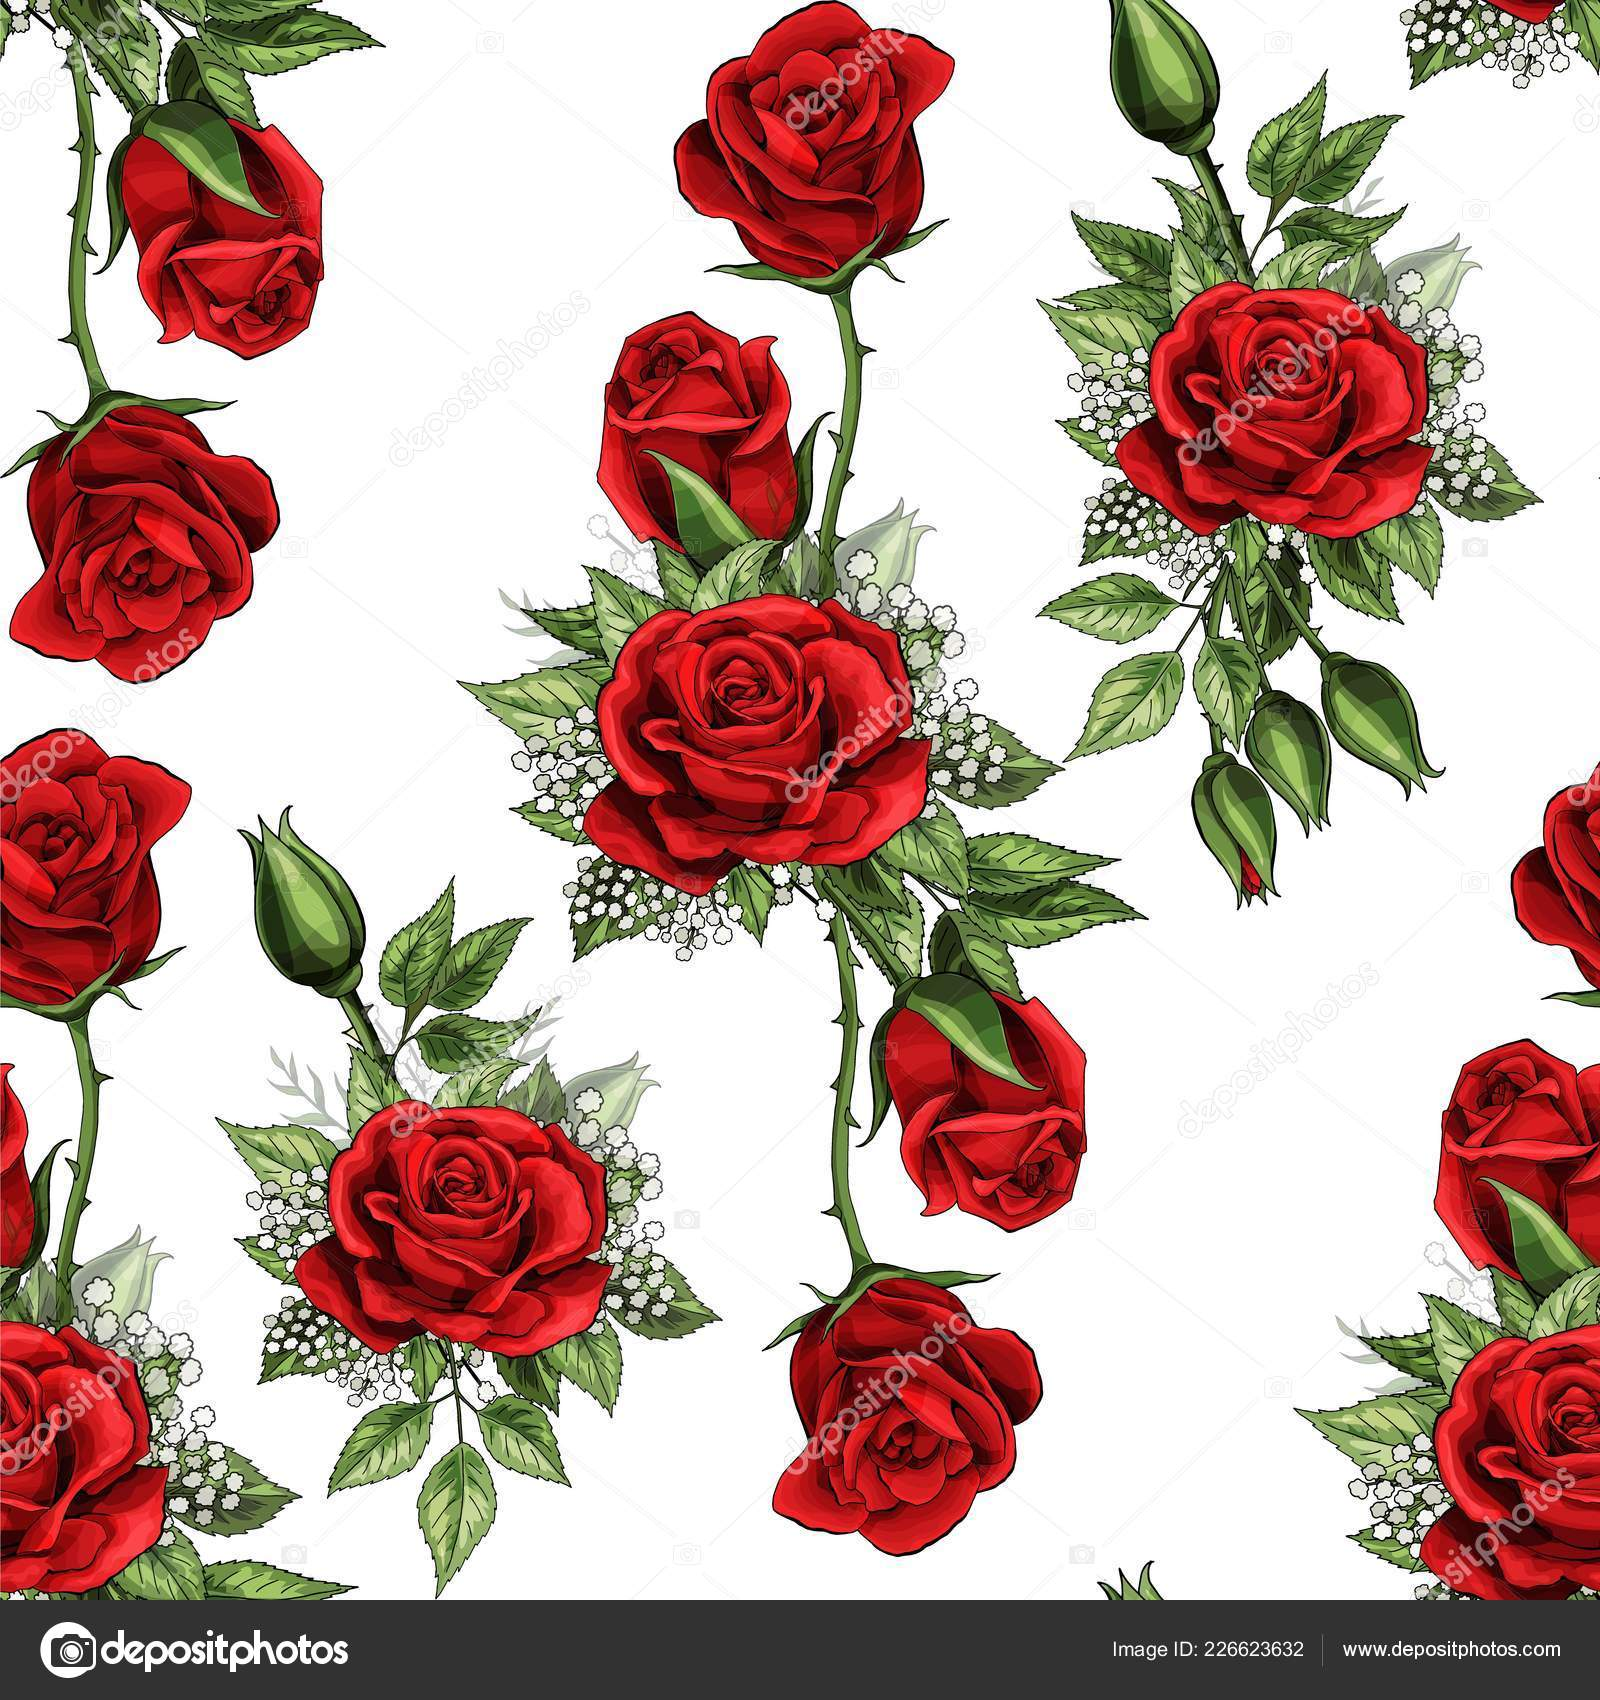 Red Rose Flower Bouquet Spreads Creeper Elements Seamless Pattern